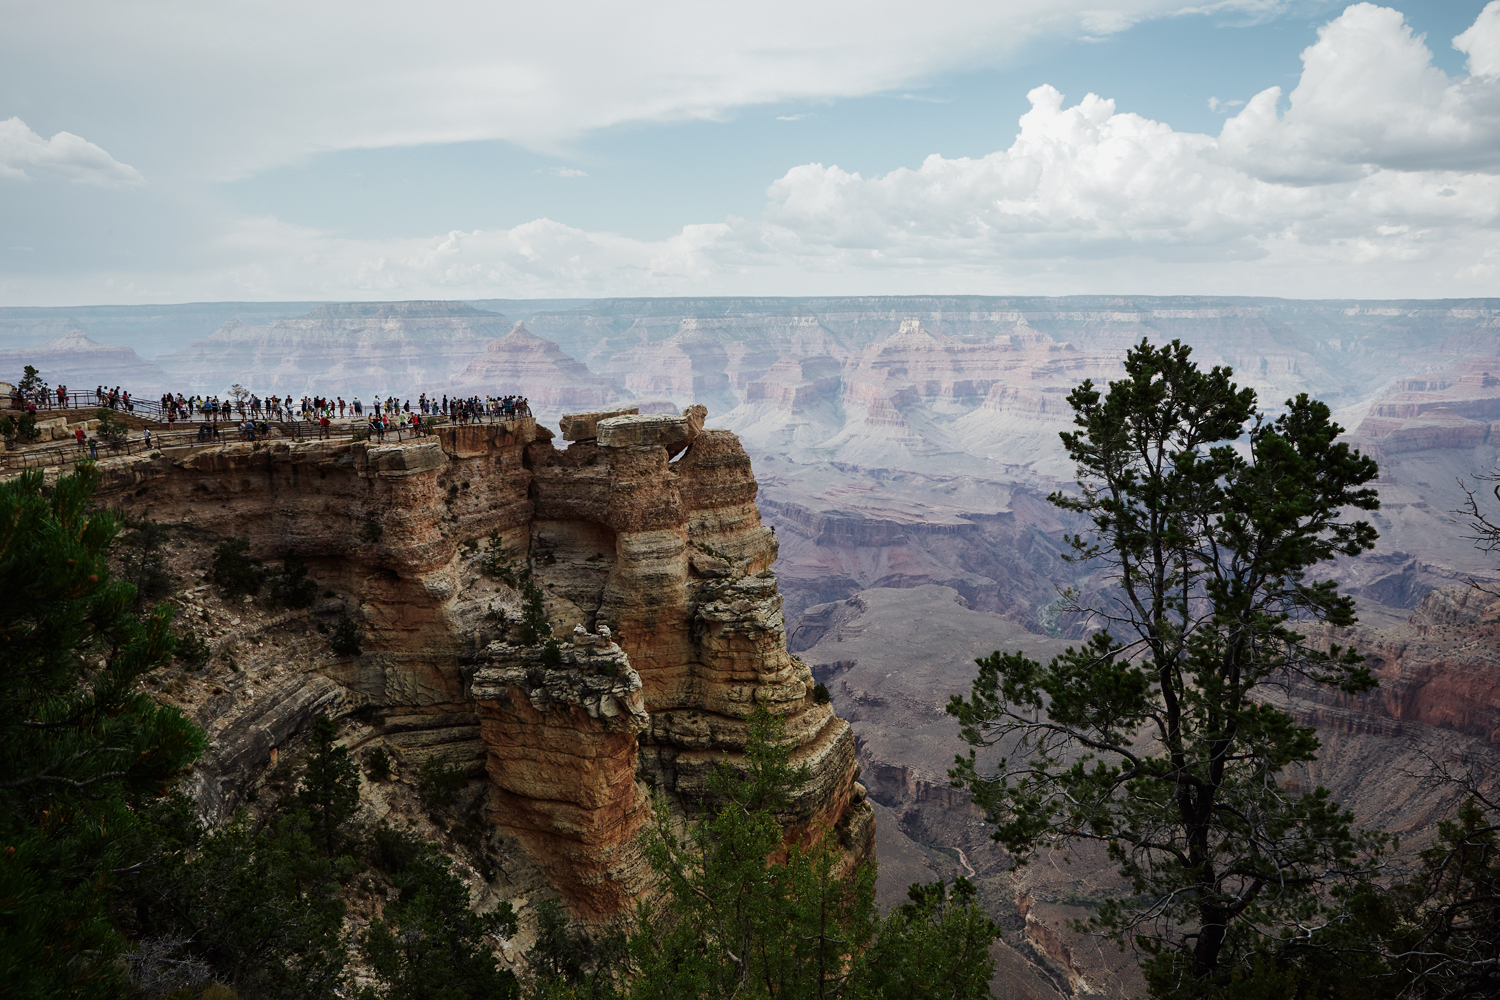 NATIONAL_PARKS_TOUR_2016_2322-v1.jpg